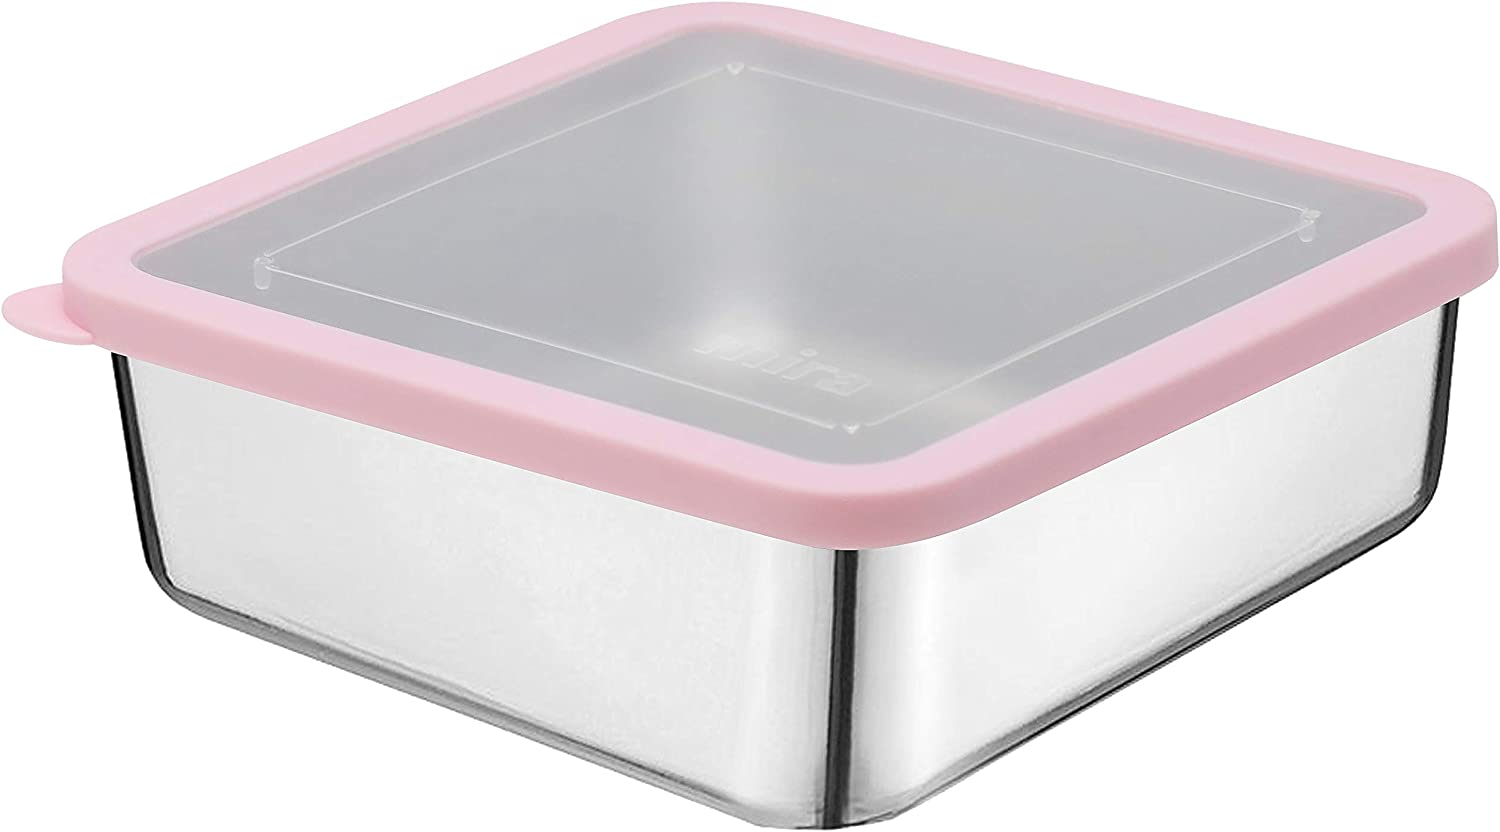 MIRA Stainless Steel Lunch Box Food Storage Container | BPA Free, Eco-Friendly, Reusable Sandwich Box & Snack Container | For Kids & Adults | 6 x 6 in | Transparent Lid (Rose Pink)